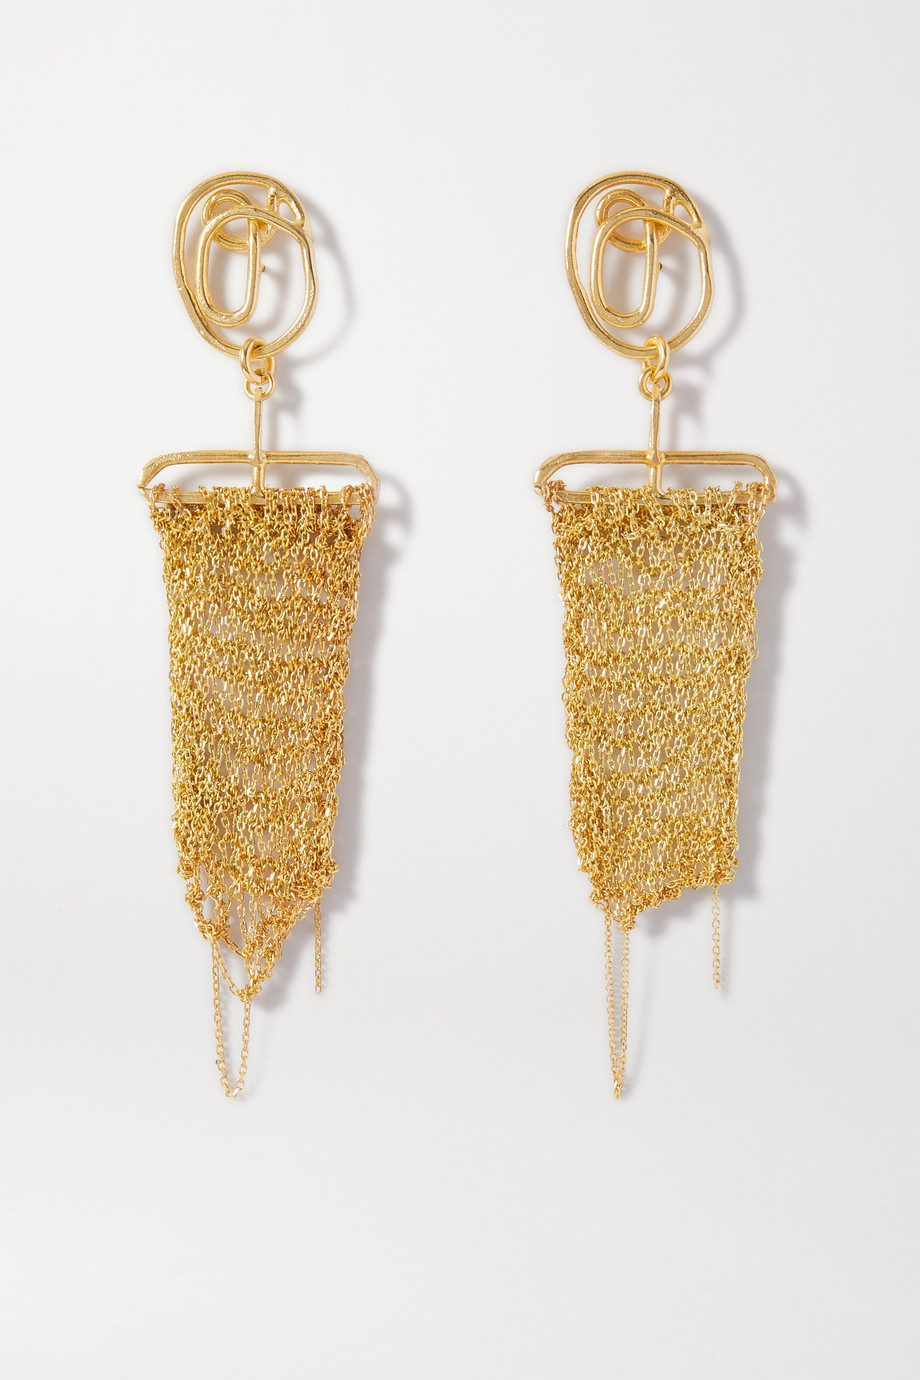 Katia Alpha Gold vermeil earrings